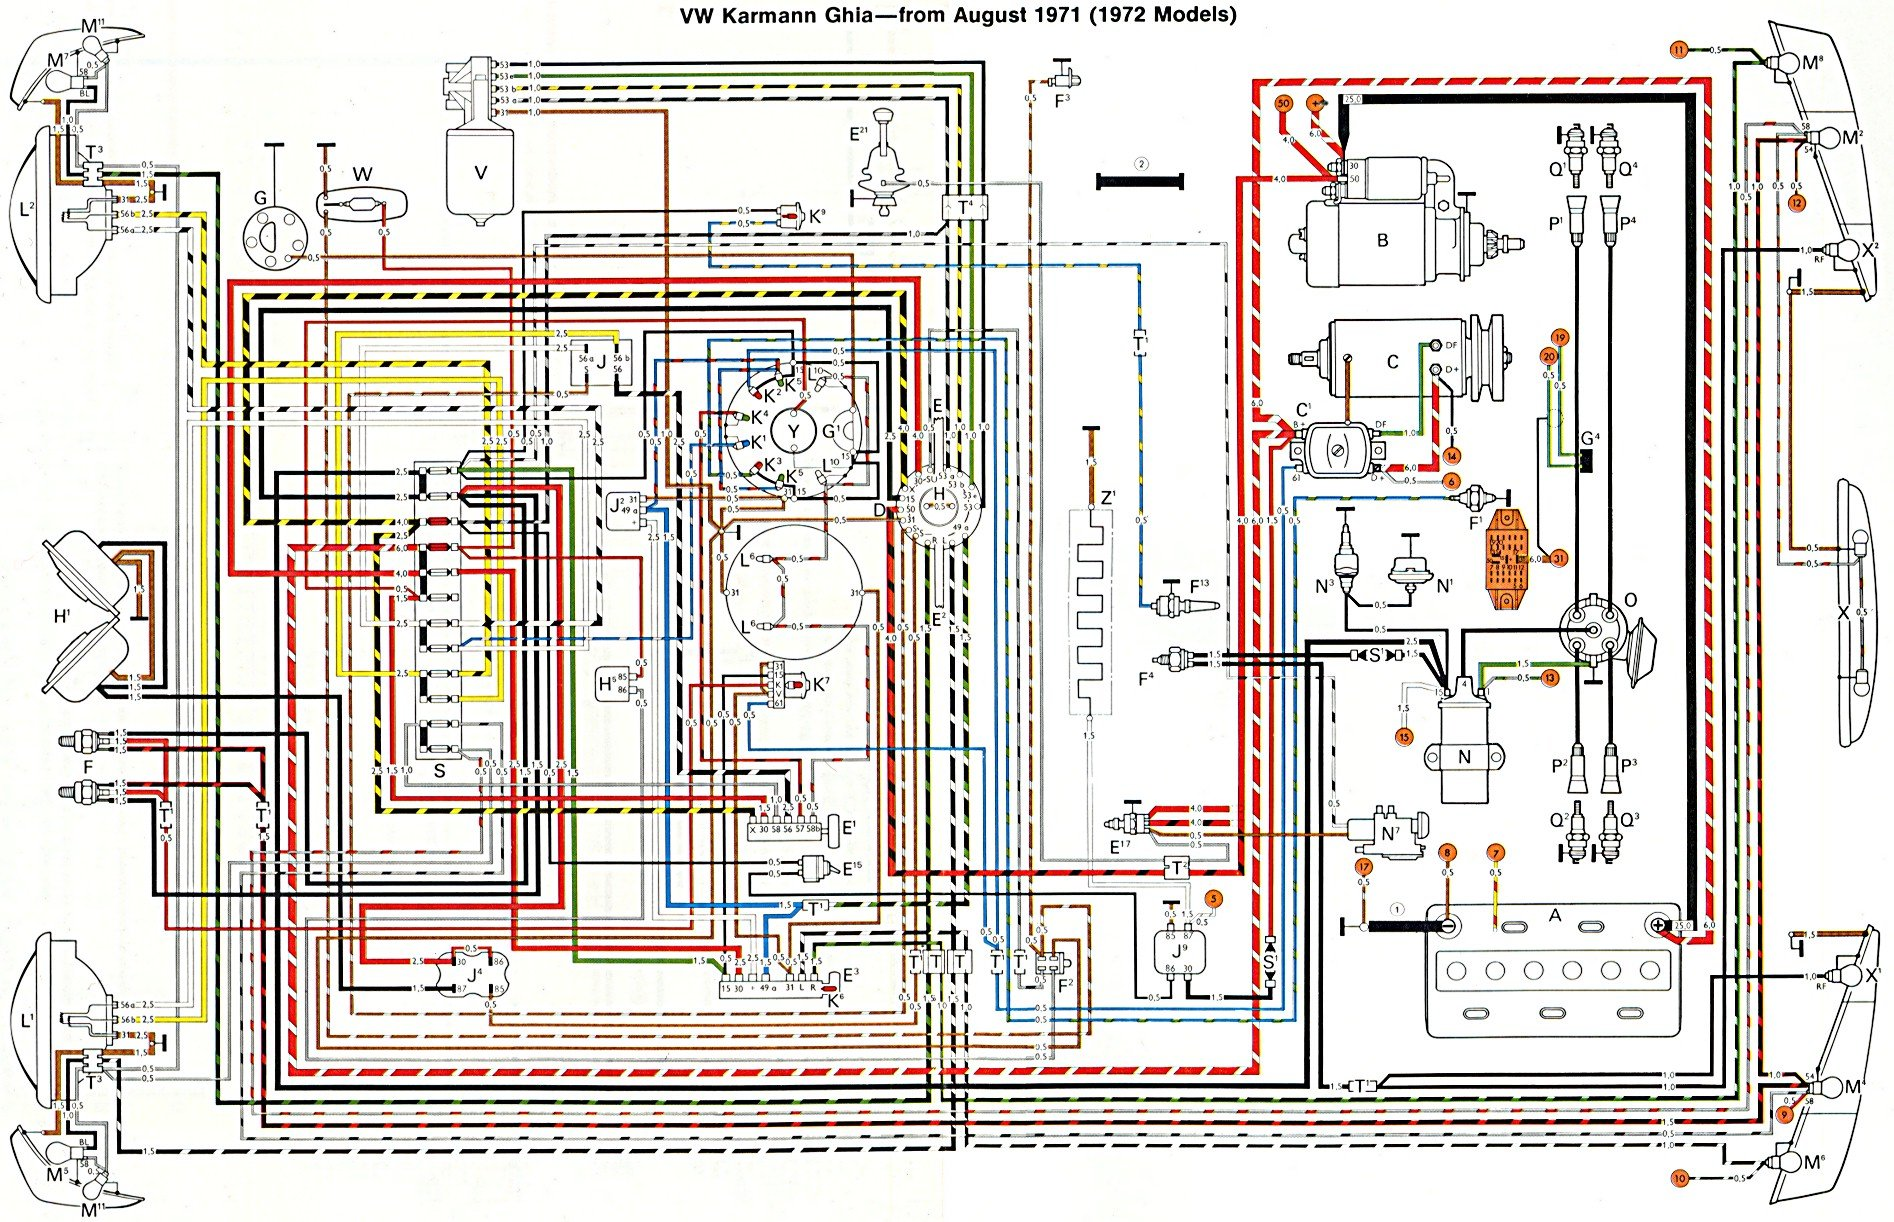 72ghia vw type 3 wiring diagram vw wiring diagrams free downloads \u2022 free vw type 3 wiring harness at cos-gaming.co